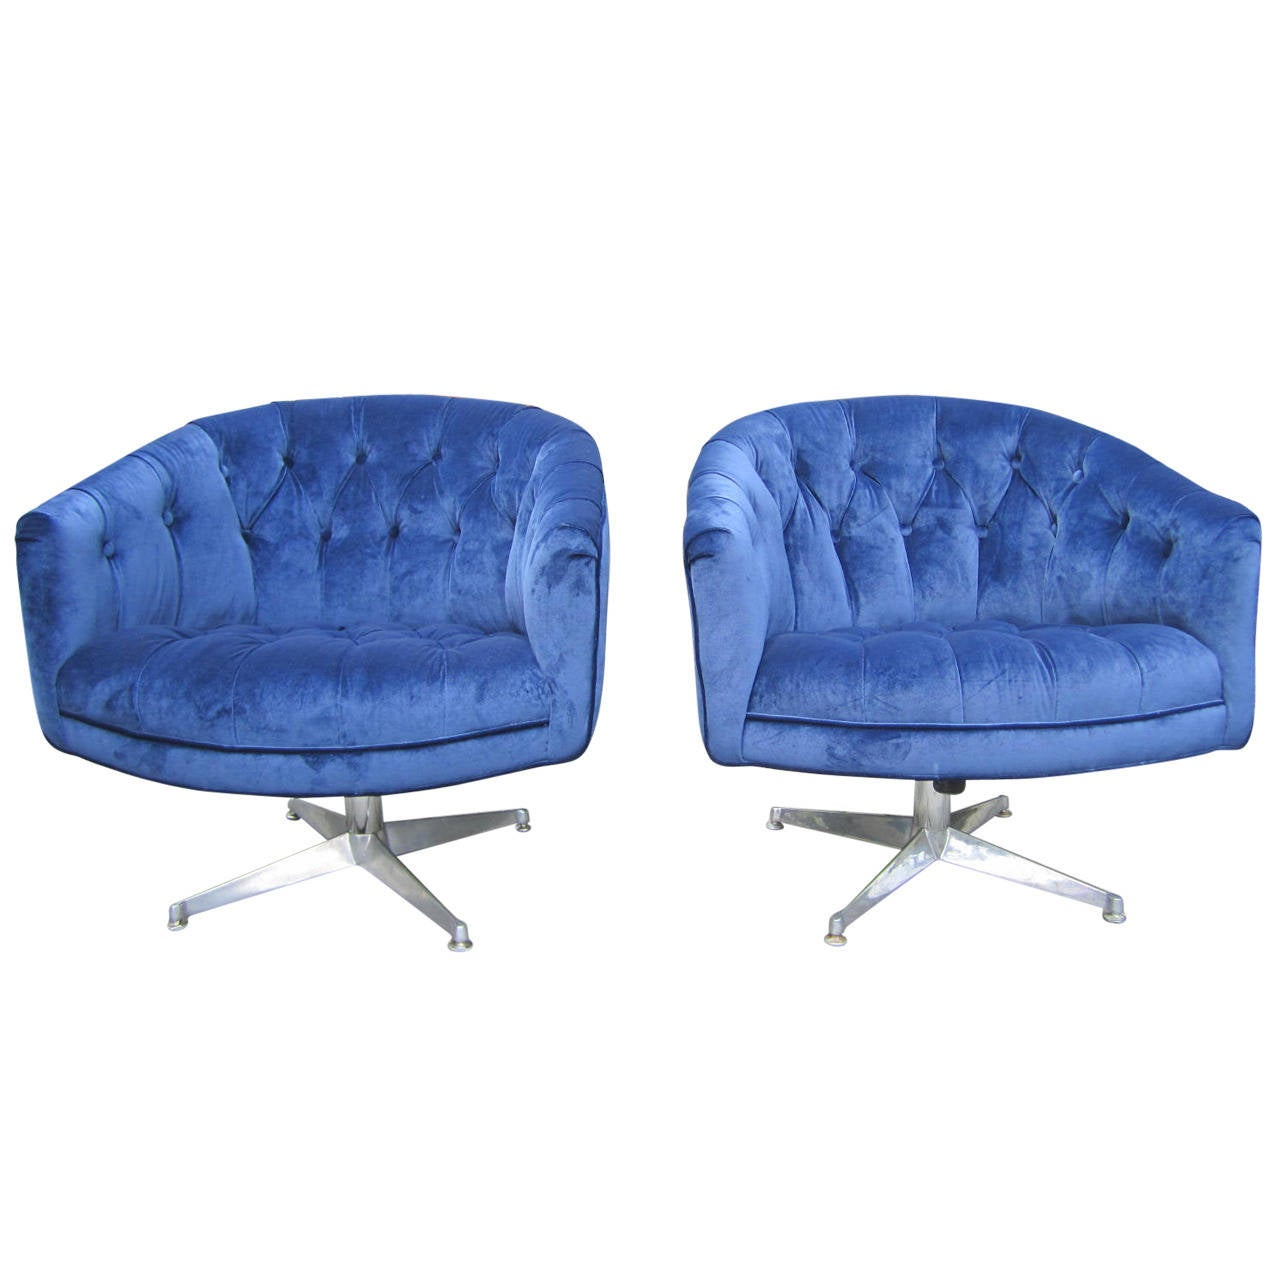 Excellent Pair of Ward Bennett style Swivel Club Chairs, Mid-Century Modern